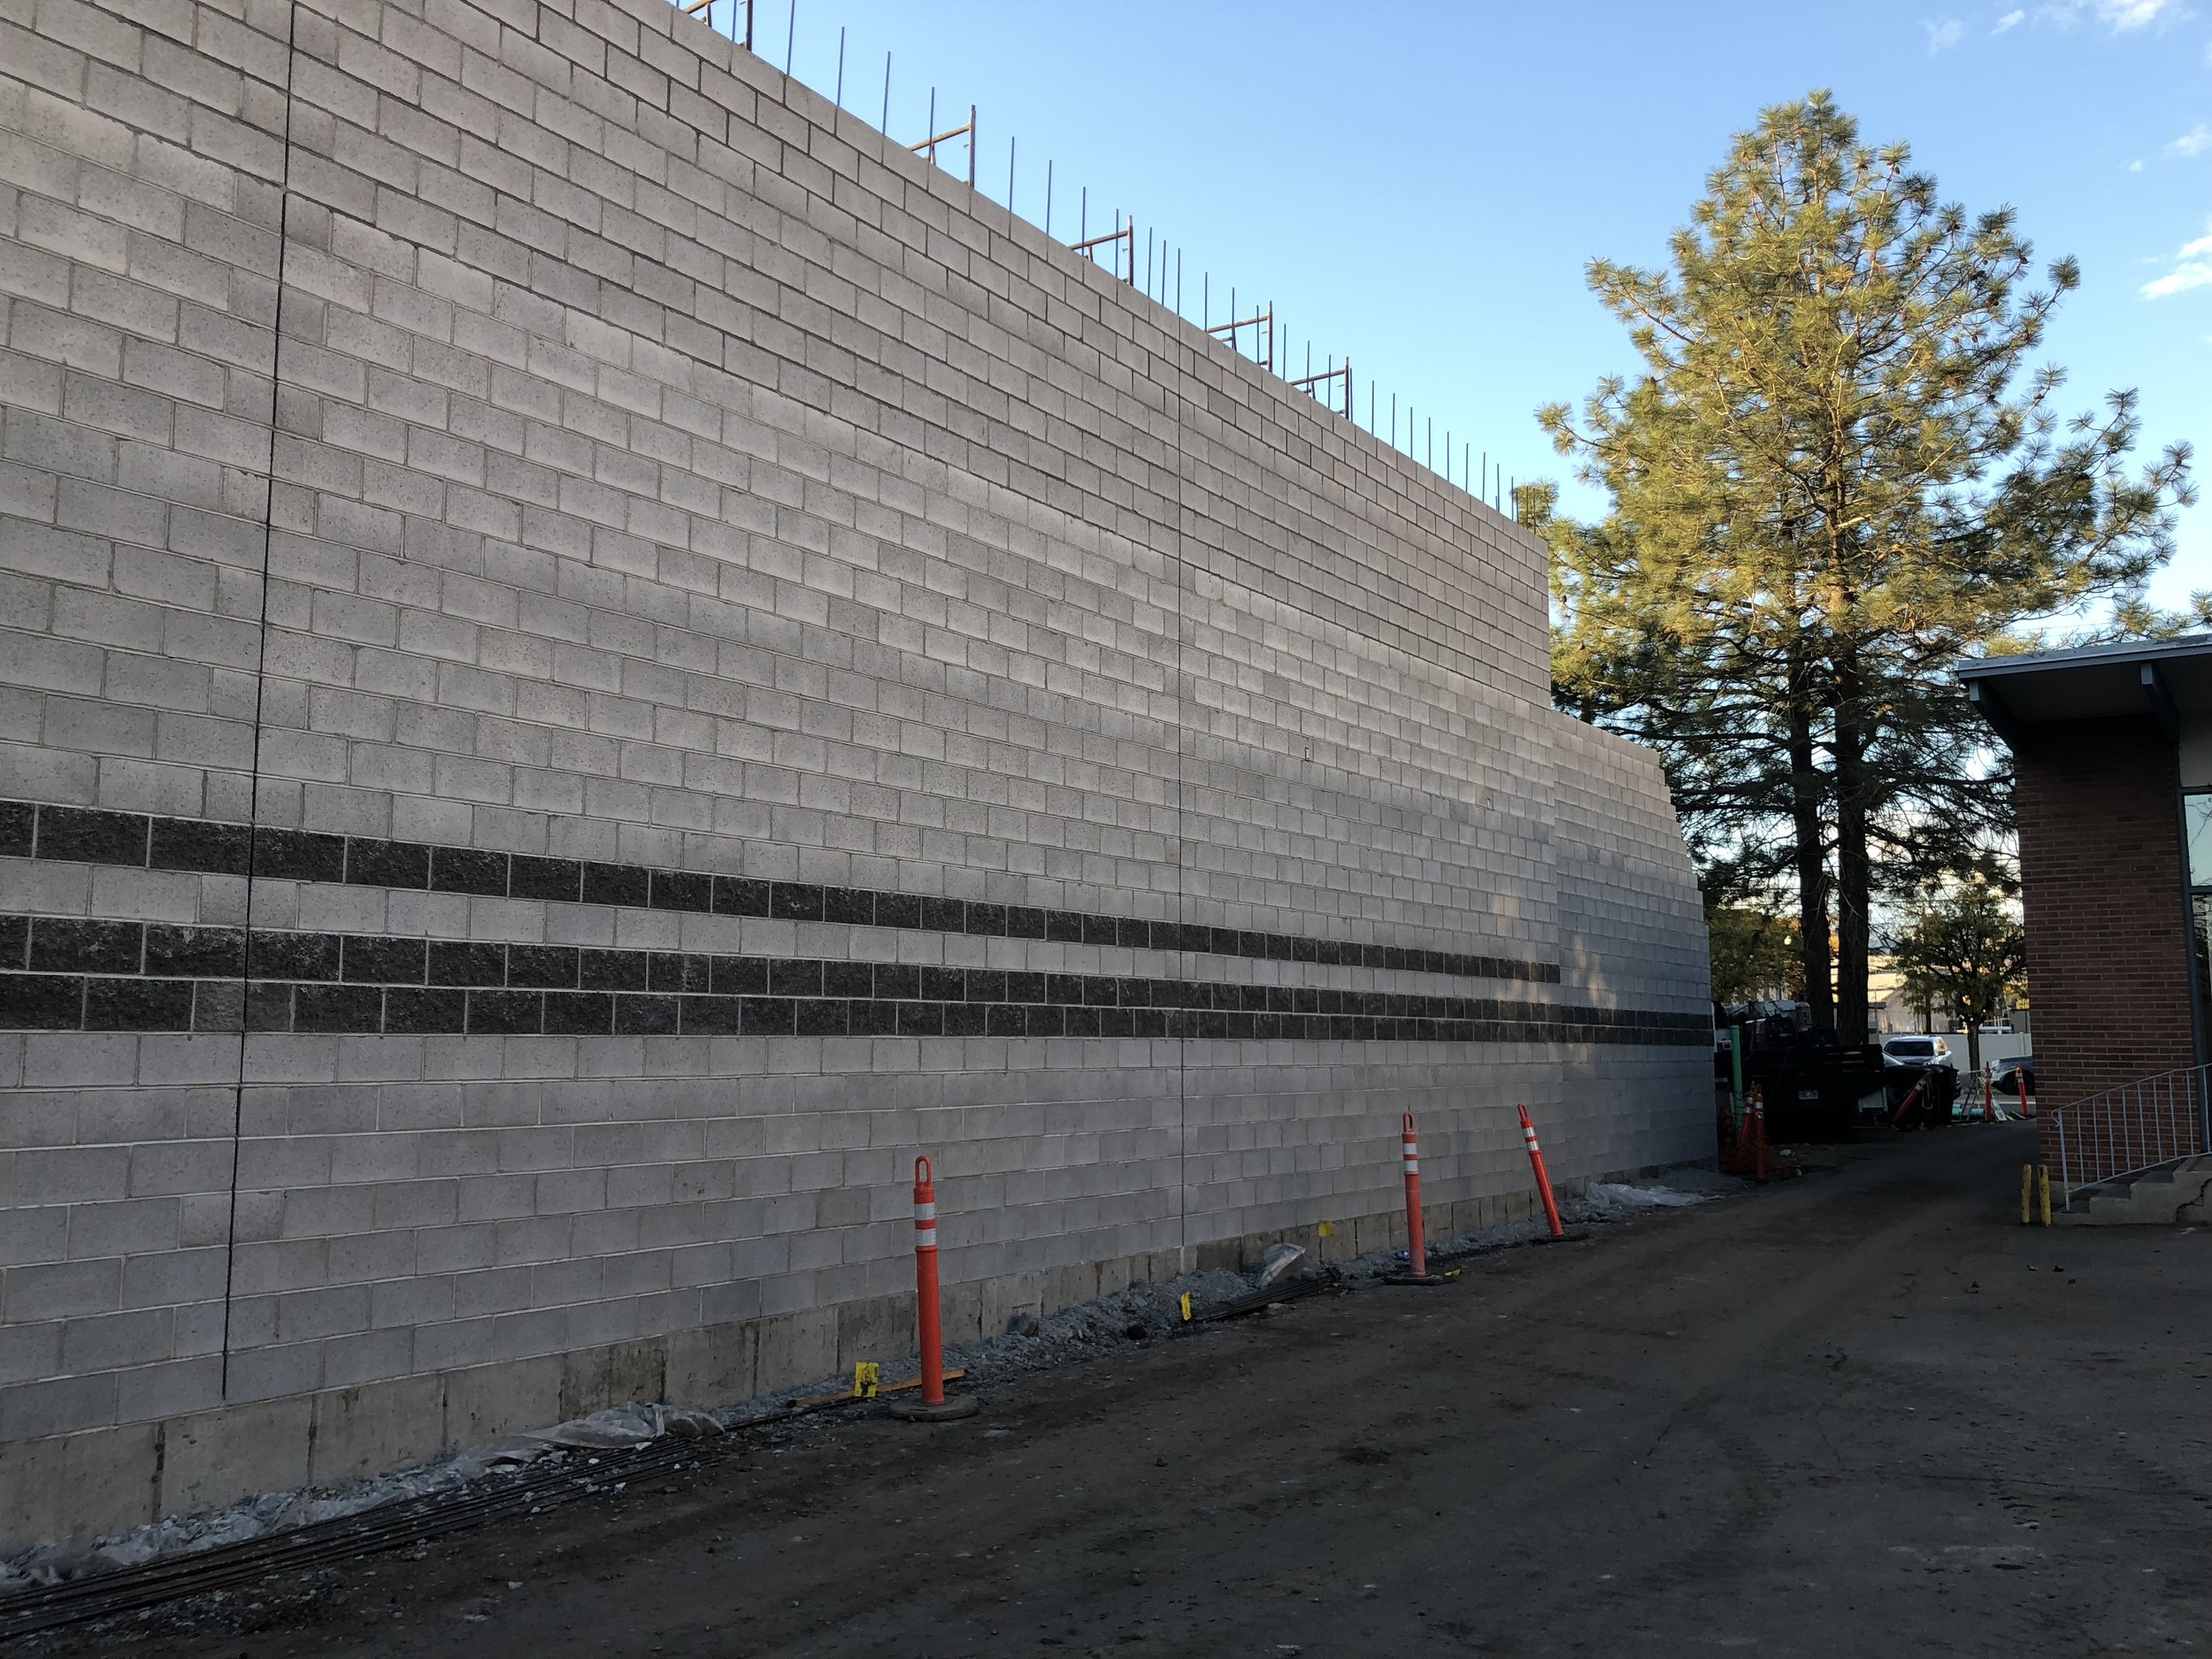 East wall, lower section is the lobby out in front of the higher studio spaces.